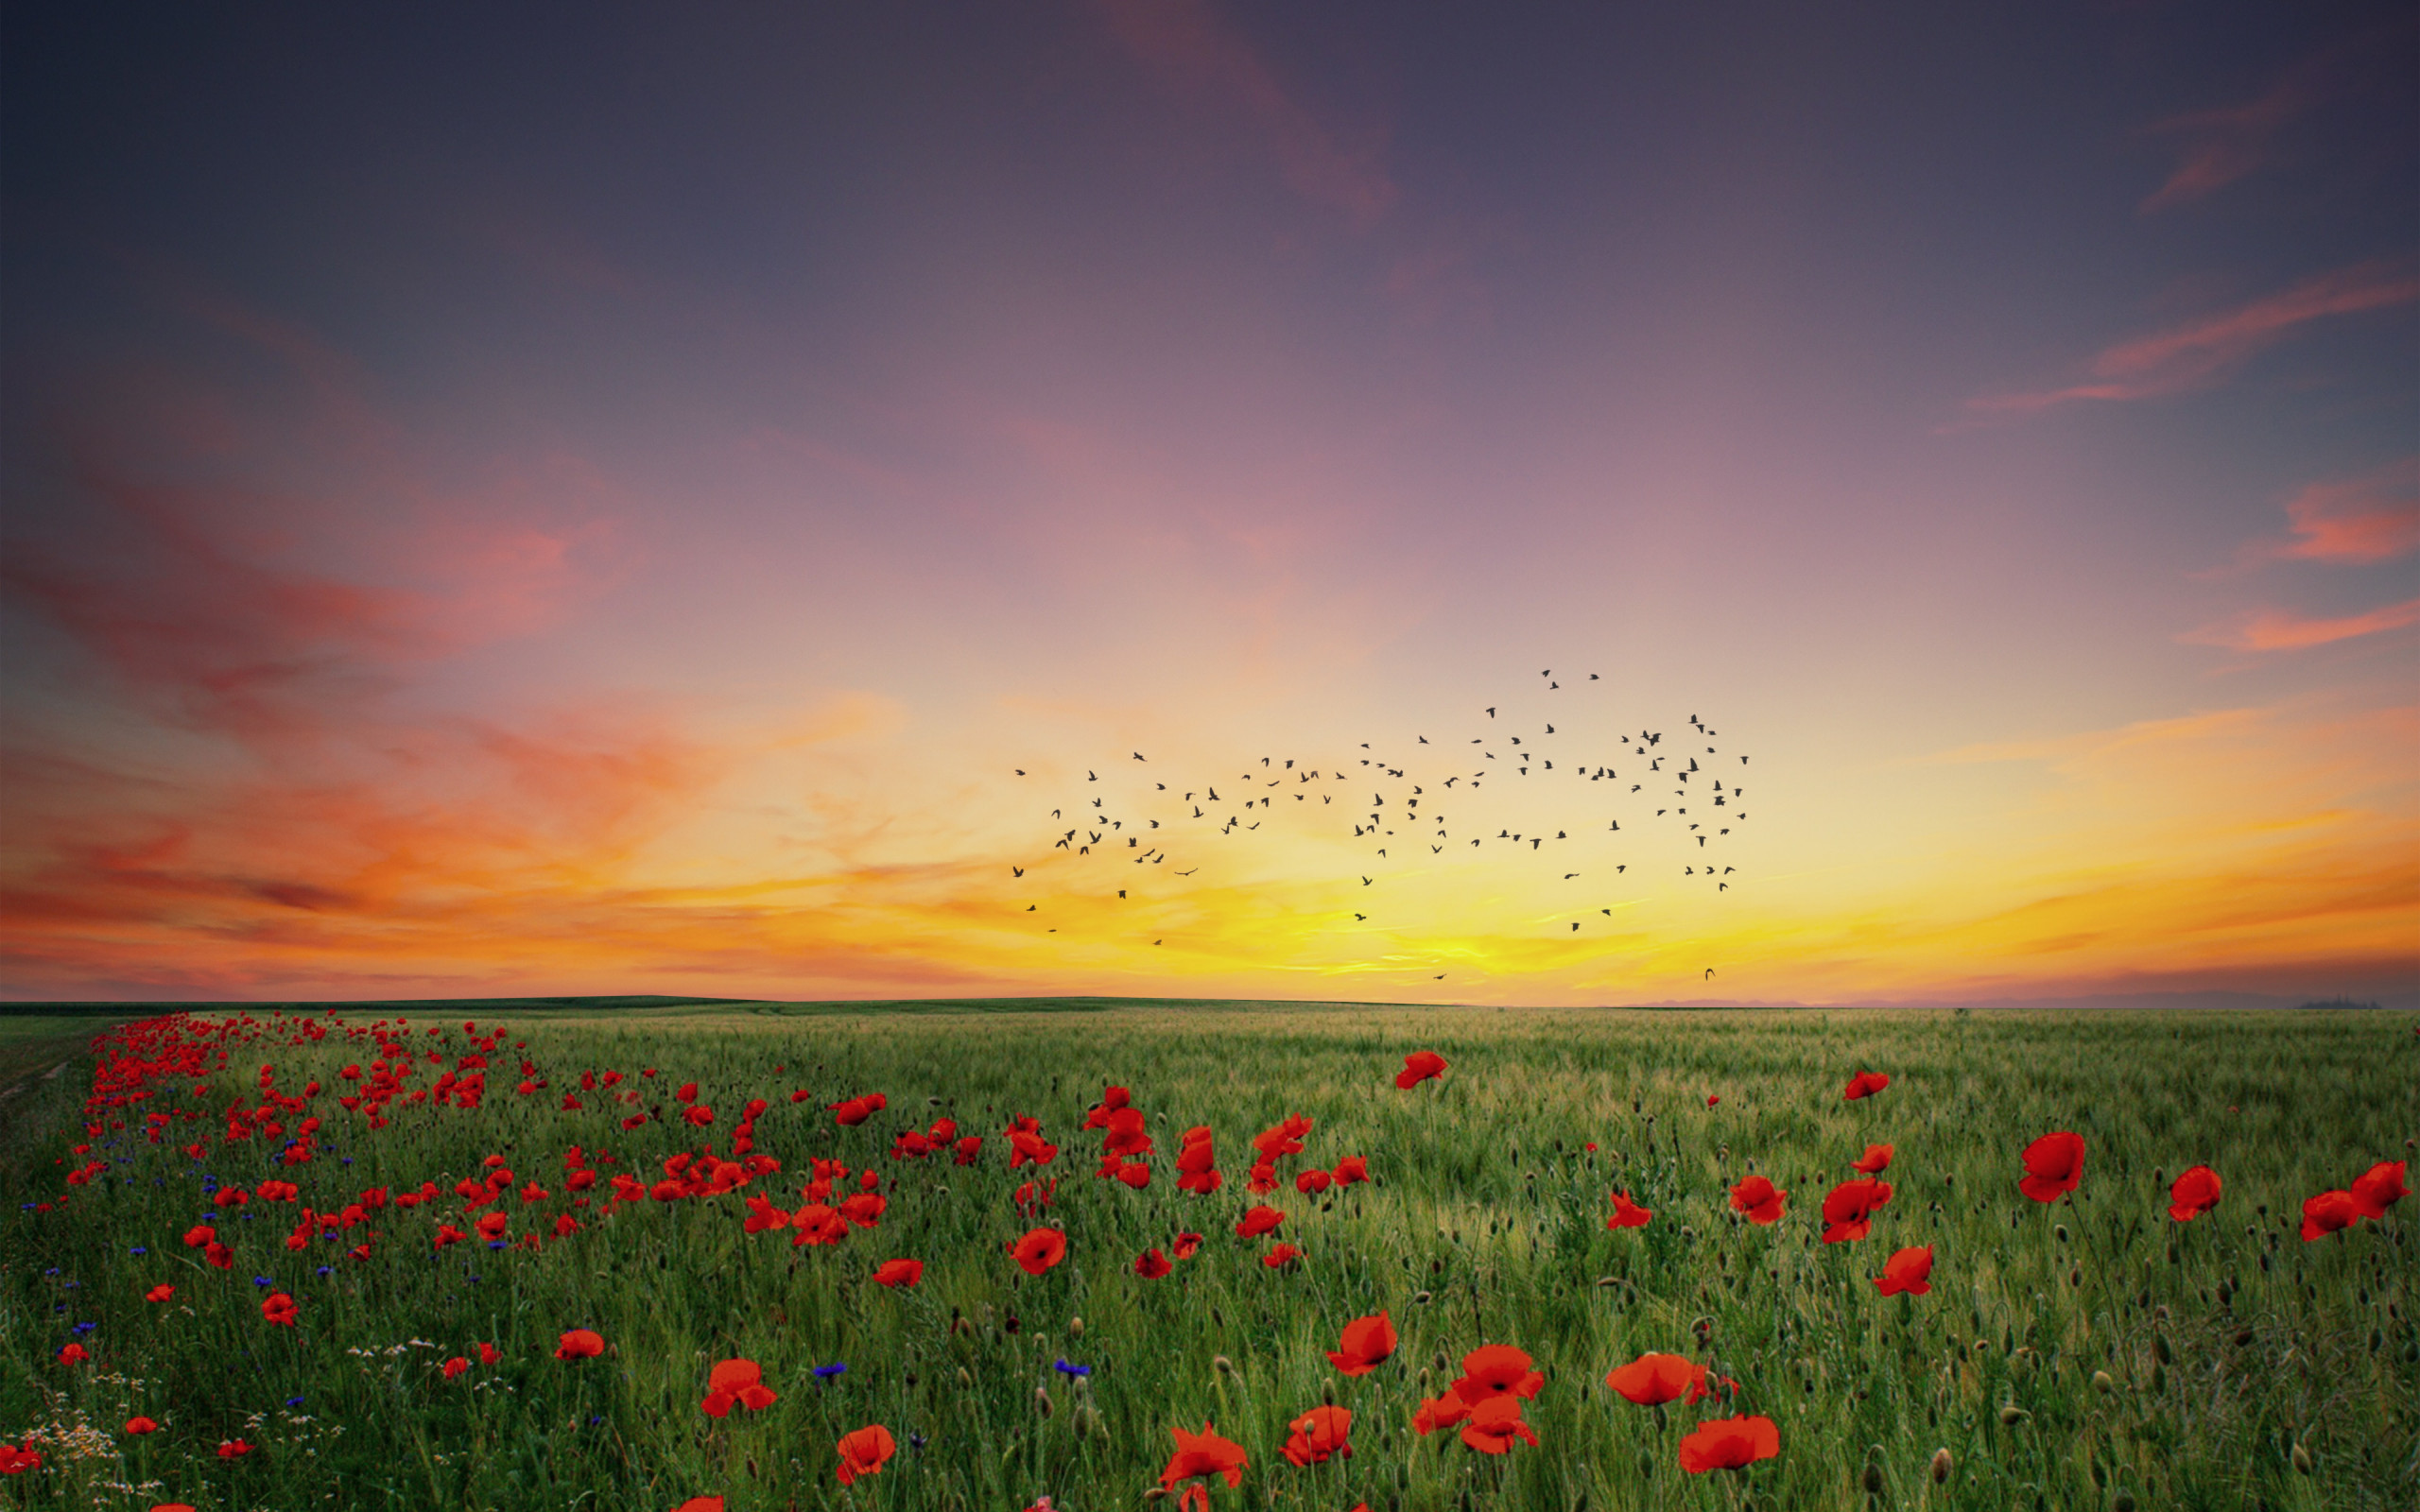 In the poppies field wallpaper 2560x1600